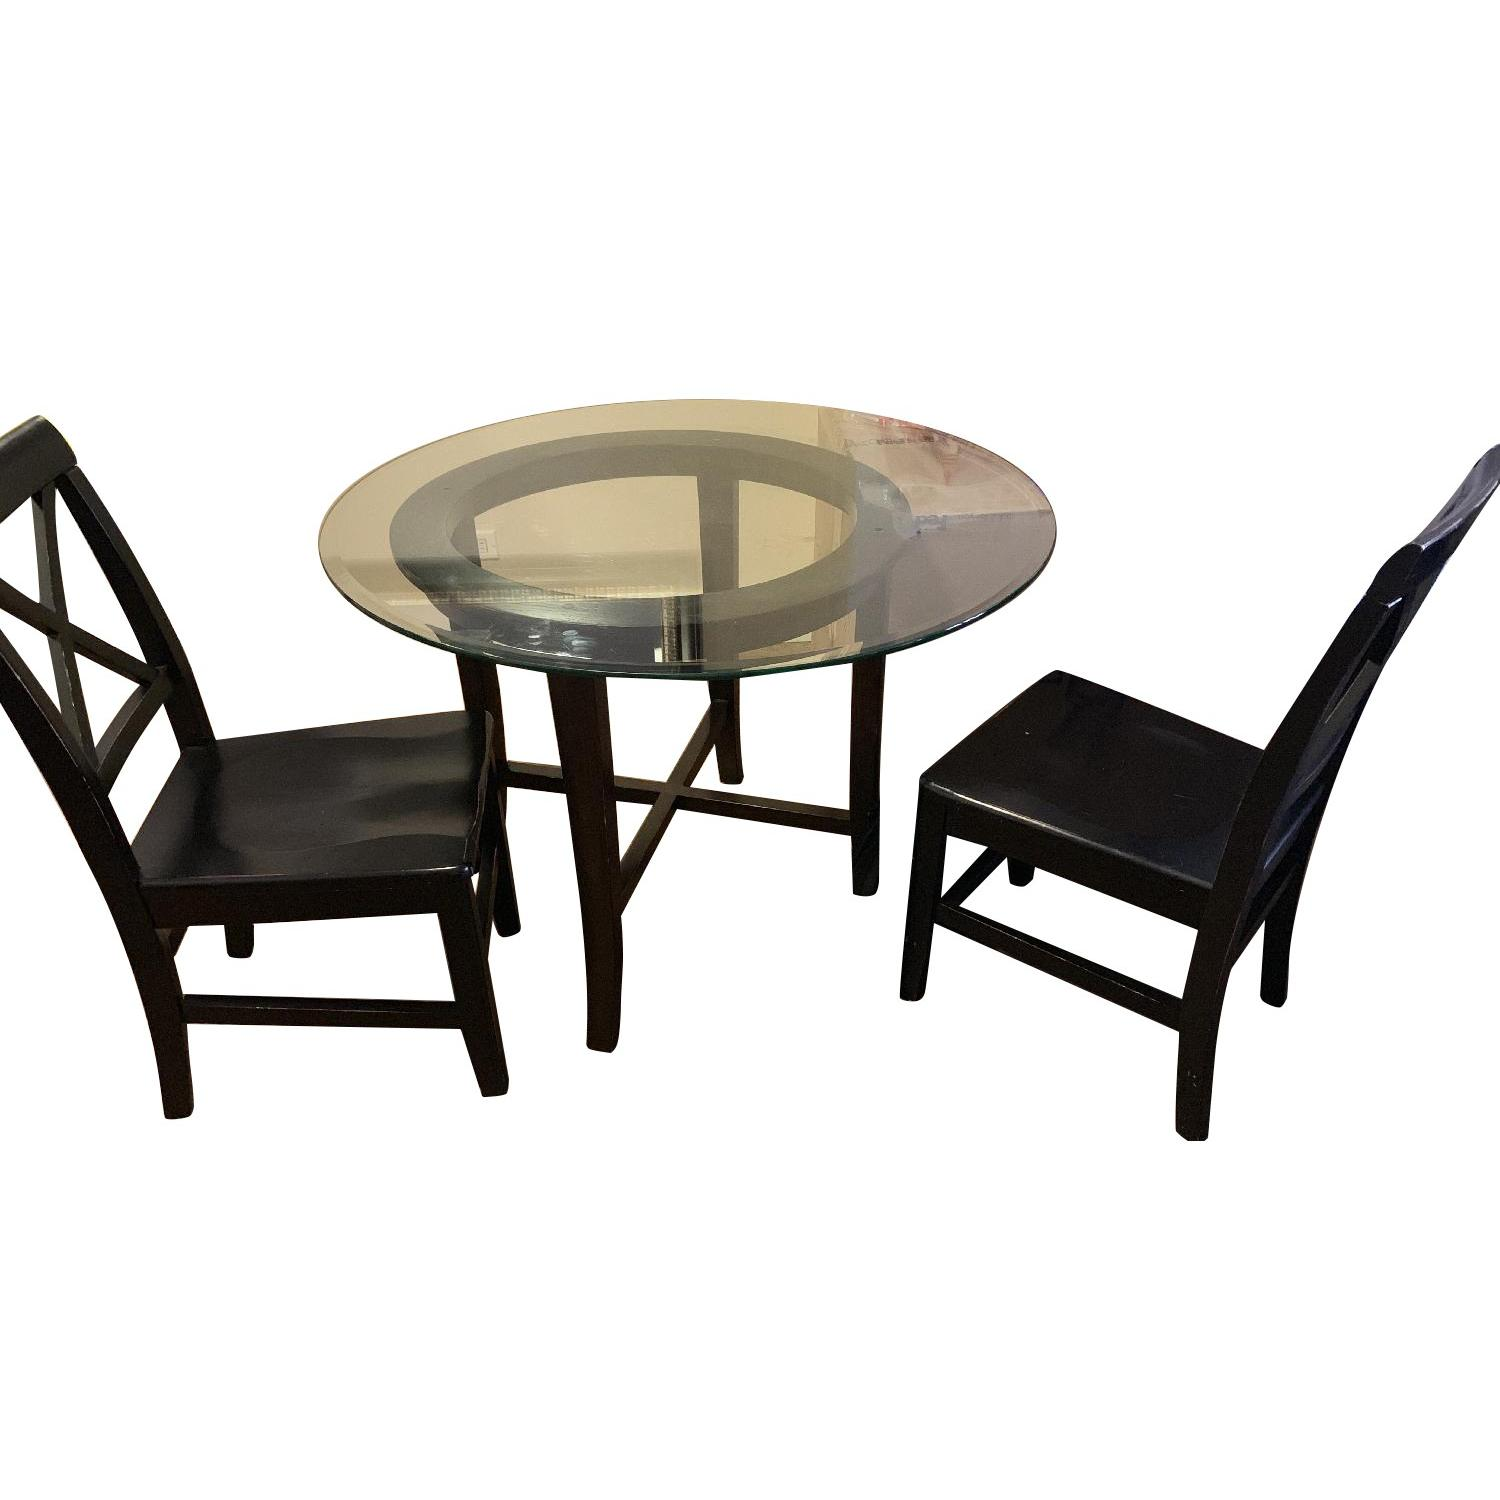 Crate Barrel Halo Ebony Glass Top Dining Table W 2 Aptdeco - Glass-topped-dining-room-tables